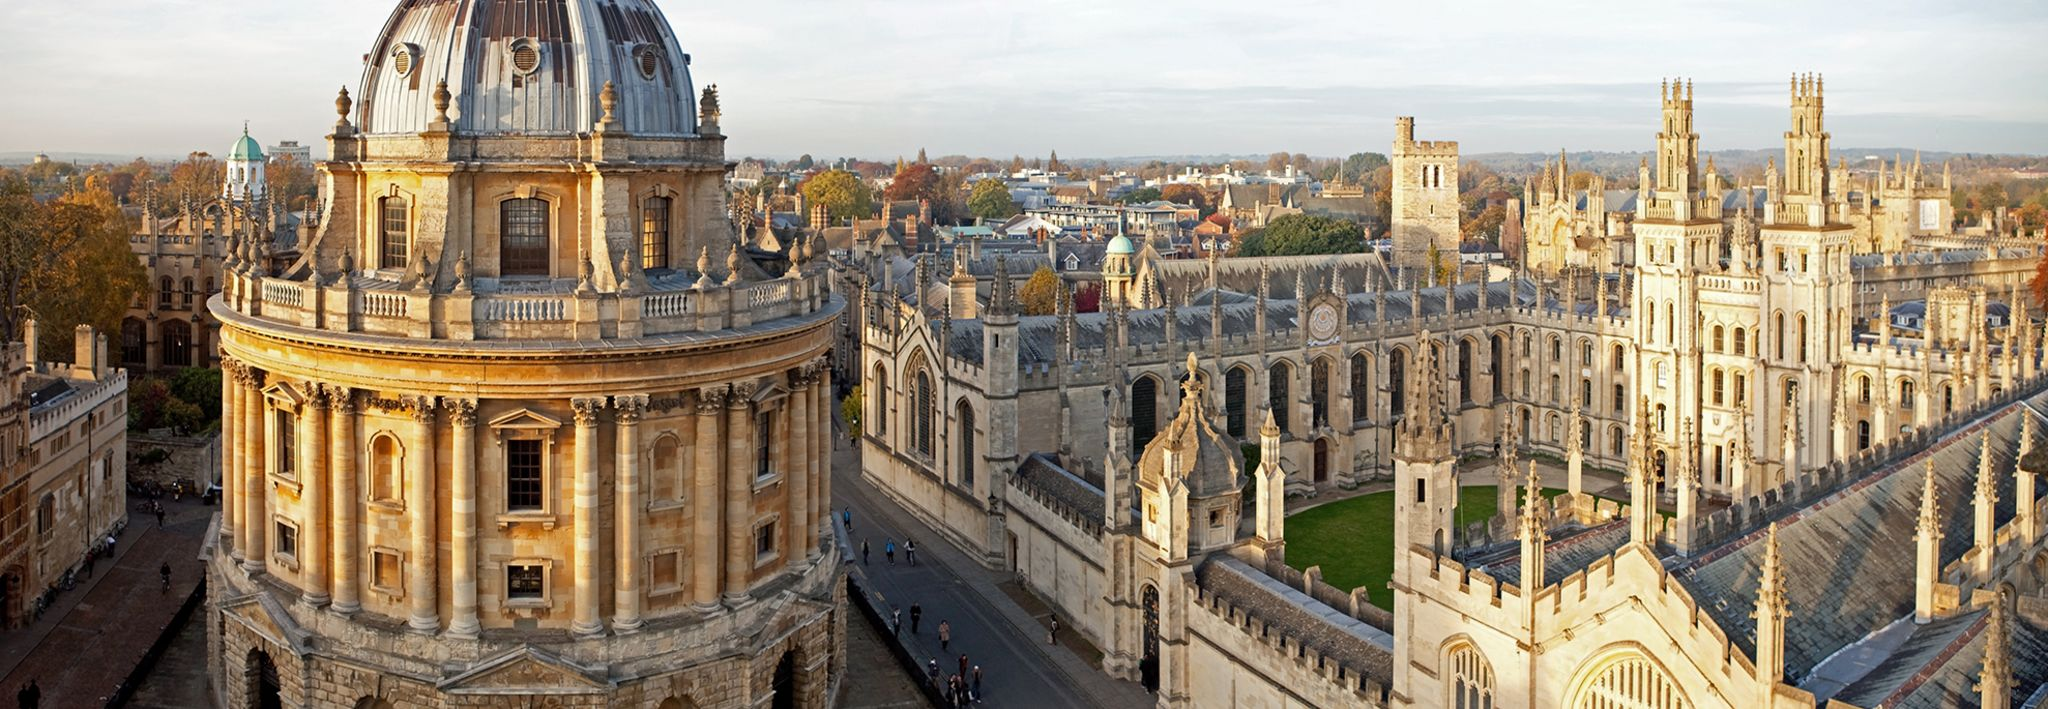 Oxford University's stunning campus.